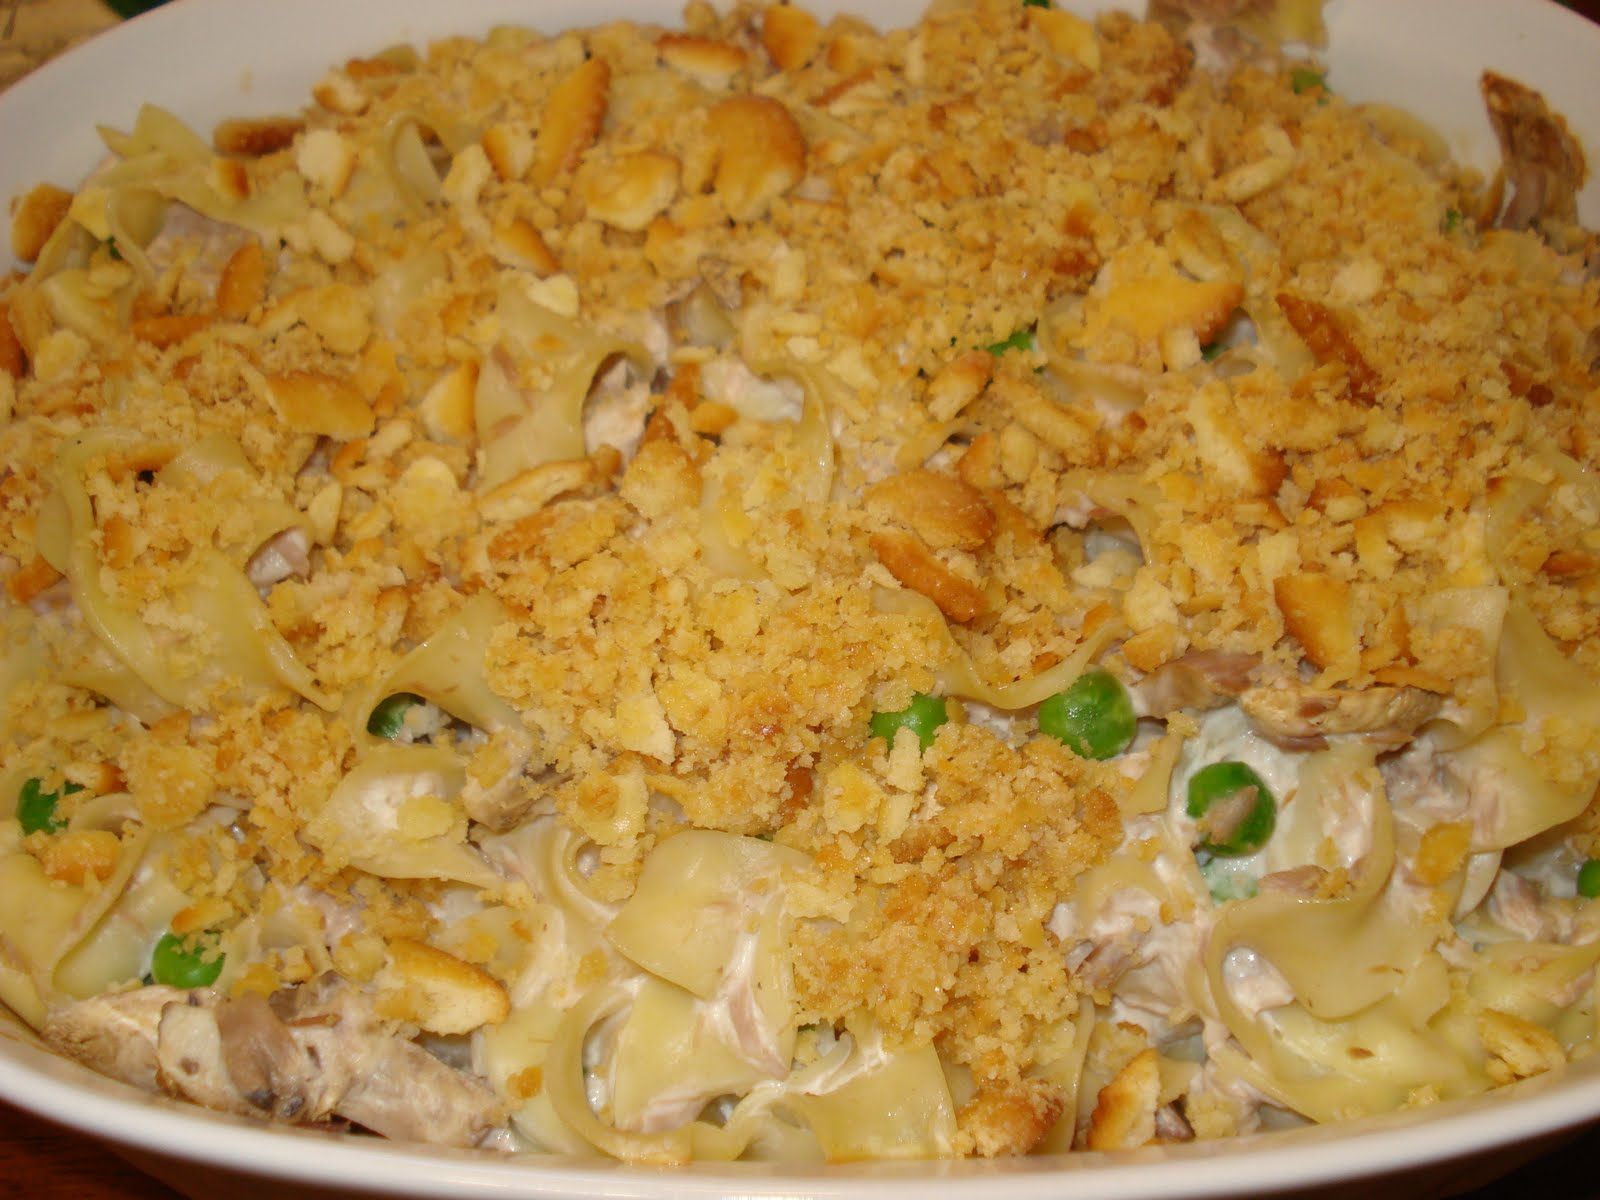 Adventures Of A Wanna Be Country Girl: Creamy Tuna Noodle Casserole